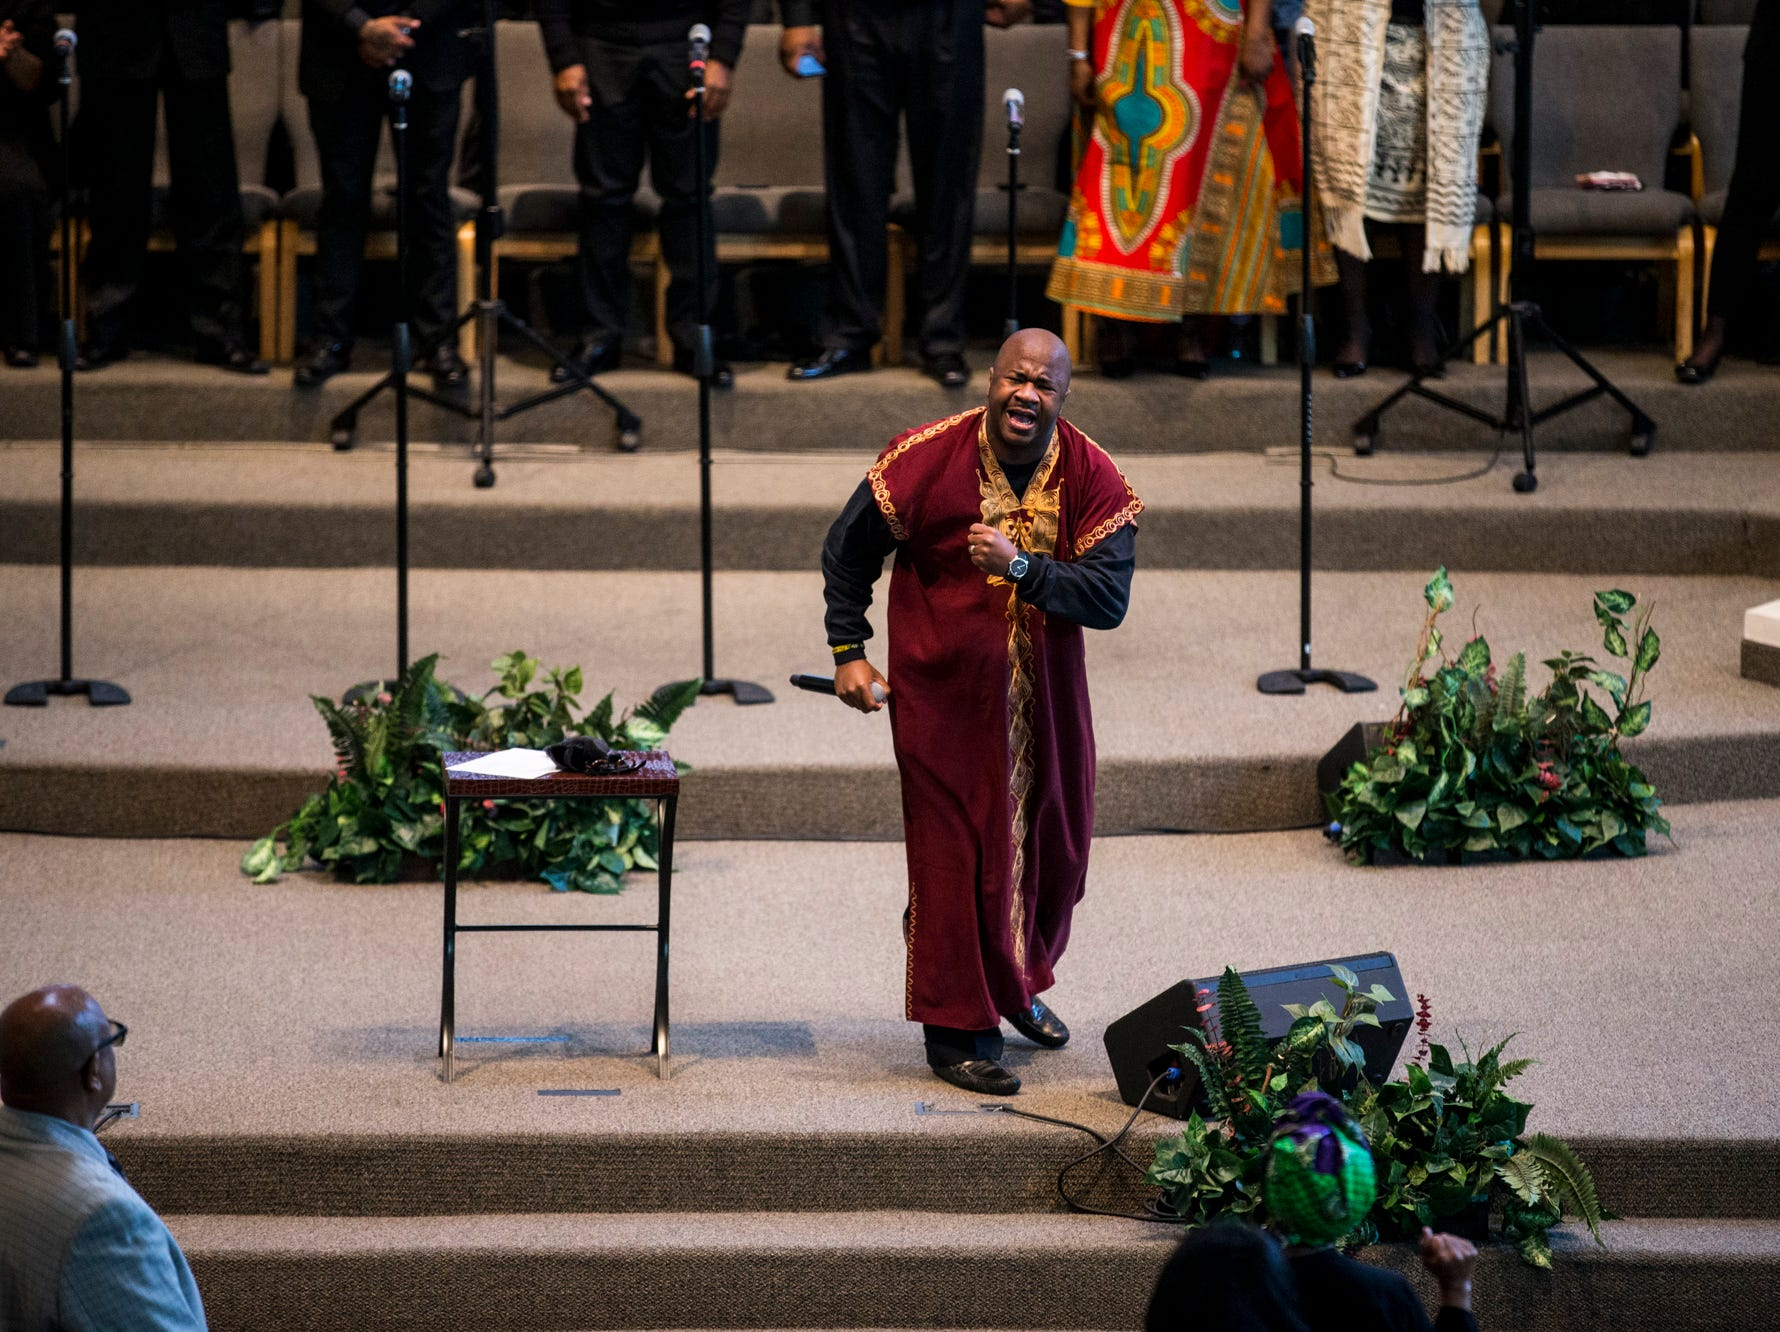 Pastor Terry Mackey preaches during the 7:30 a.m. service on Feb. 24, 2019, at Pilgrim Rest Baptist Church in Phoenix. Mackey was appointed to replace the late Bishop Alexis Thomas.